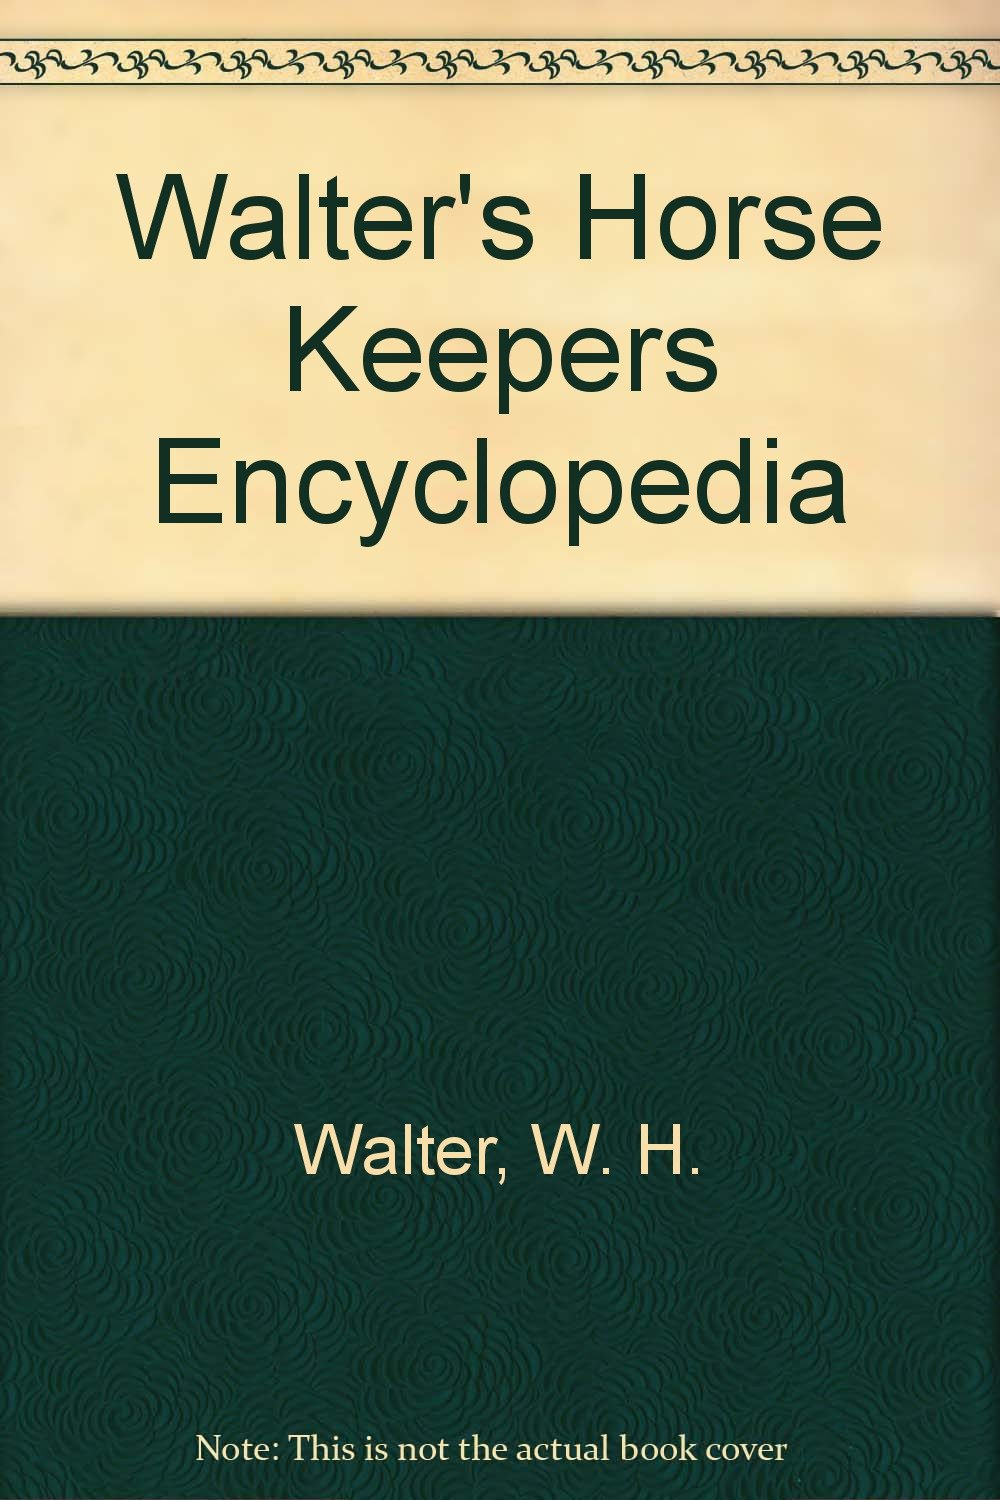 Walter's horse keepers' encyclopedia (Right way books)